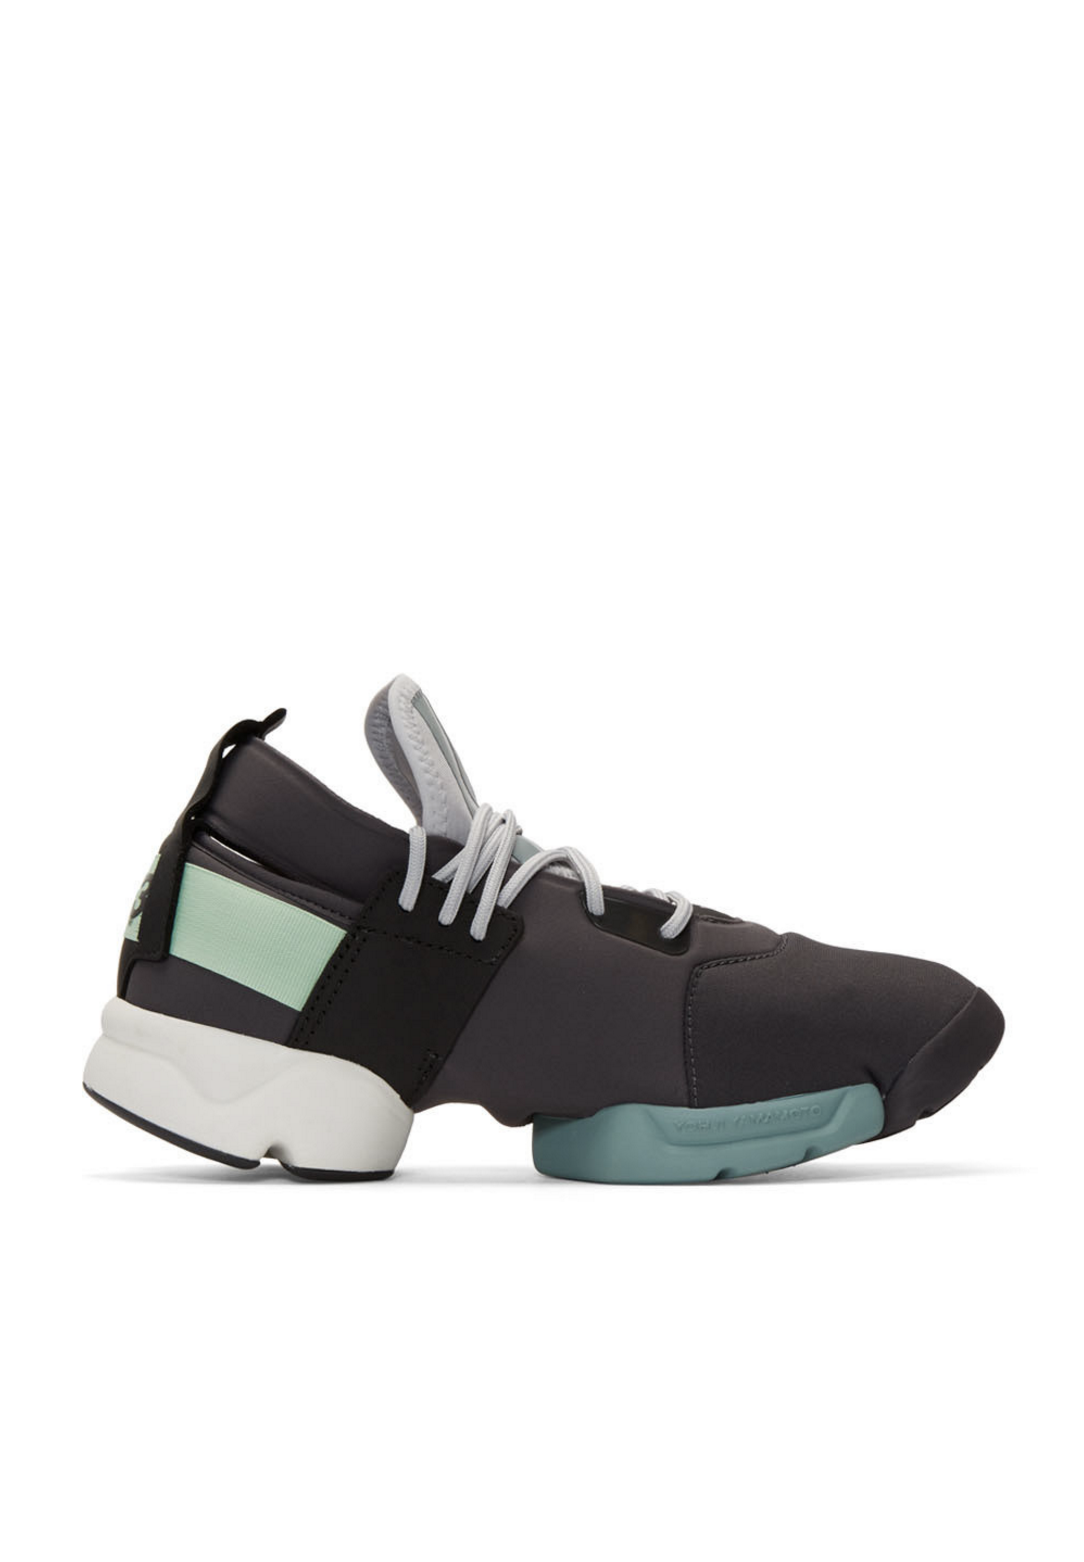 2c59af0f1 Y-3 Grey Kydo Sneakers from SSENSE (men